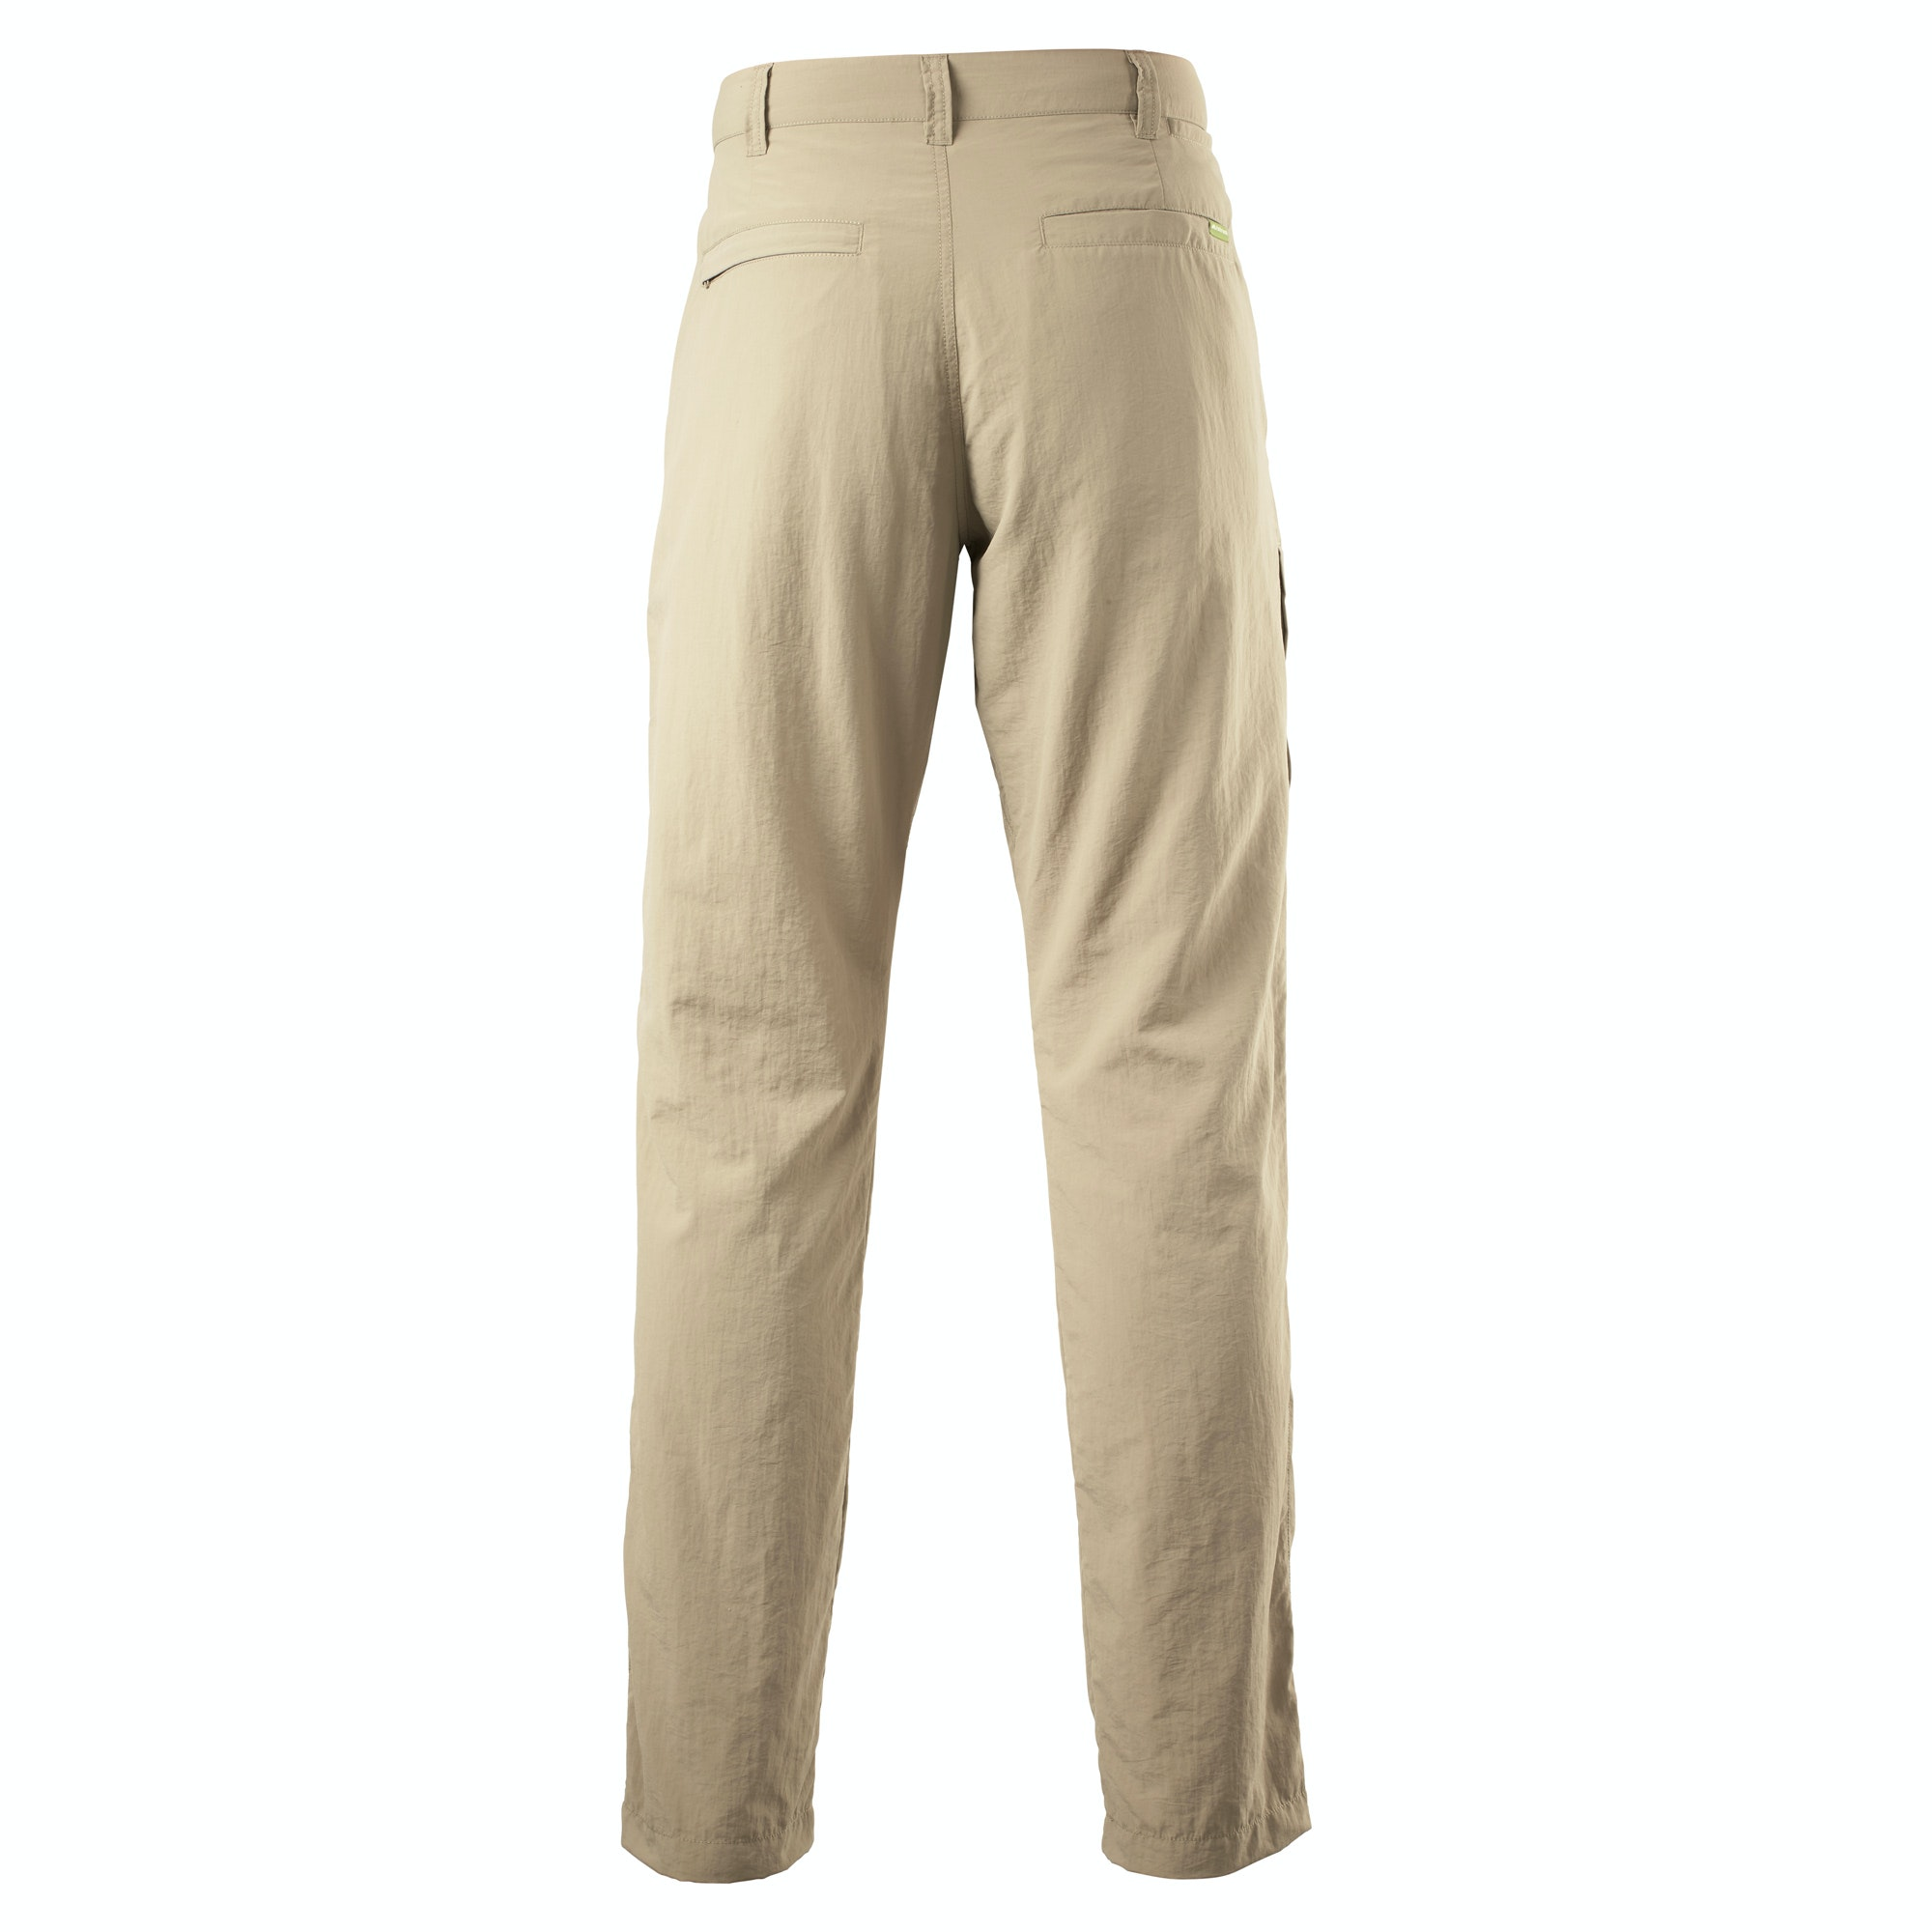 Find great deals on eBay for mens lightweight trousers. Shop with confidence.